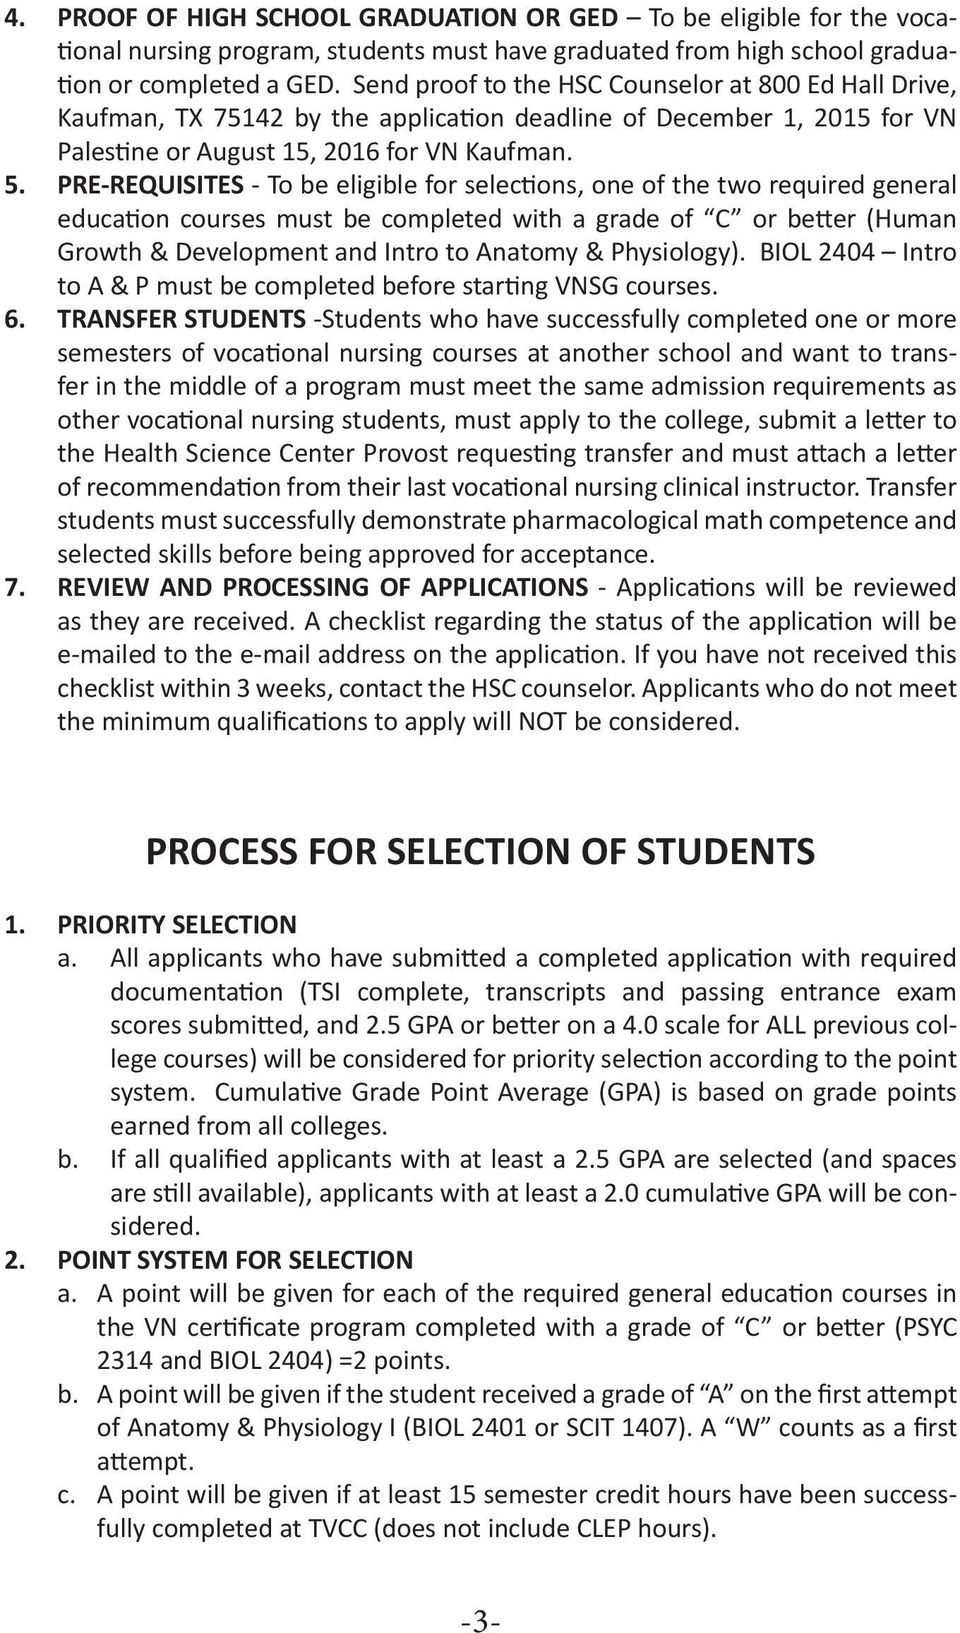 PRE-REQUISITES - To be eligible for selections, one of the two required general education courses must be completed with a grade of C or better (Human Growth & Development and Intro to Anatomy &